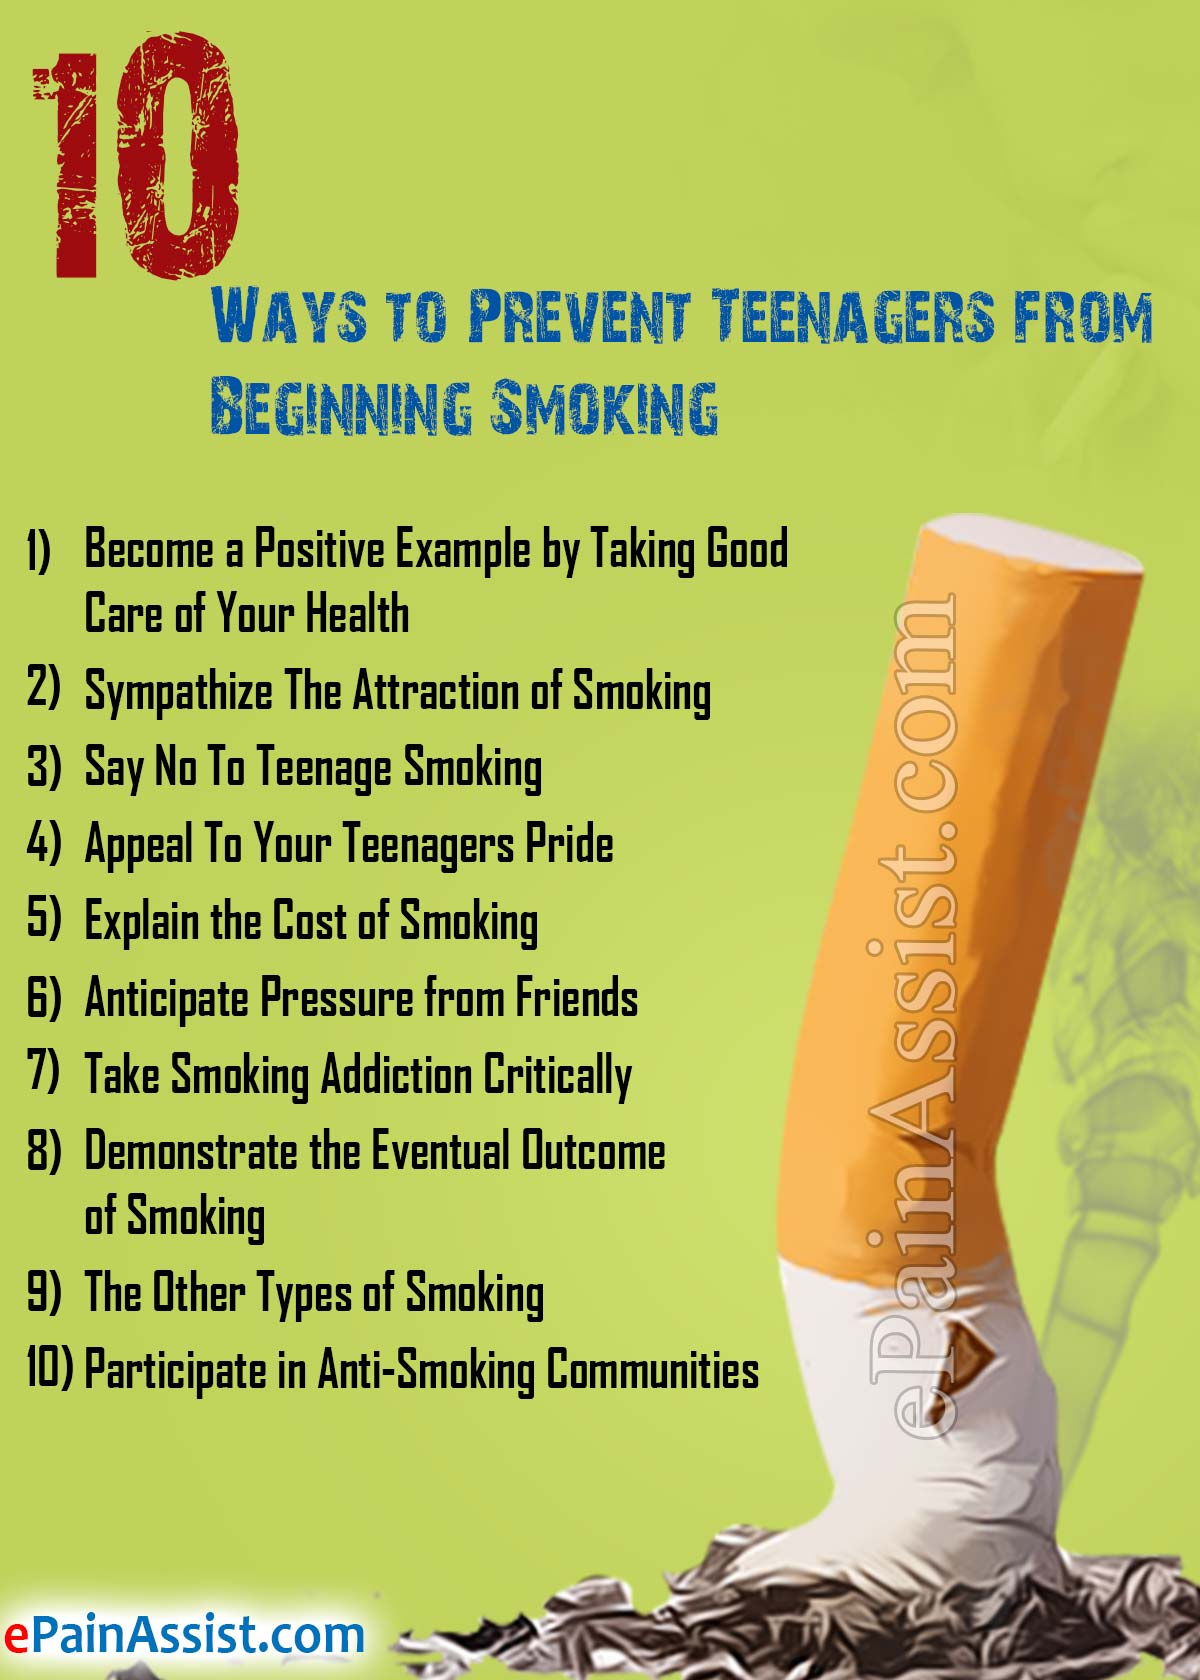 preventing teenage smoking essay Preventing teenage smoking purpose my purpose for this project is to prevent and stop teenage smoking smoking causes many health problems like.